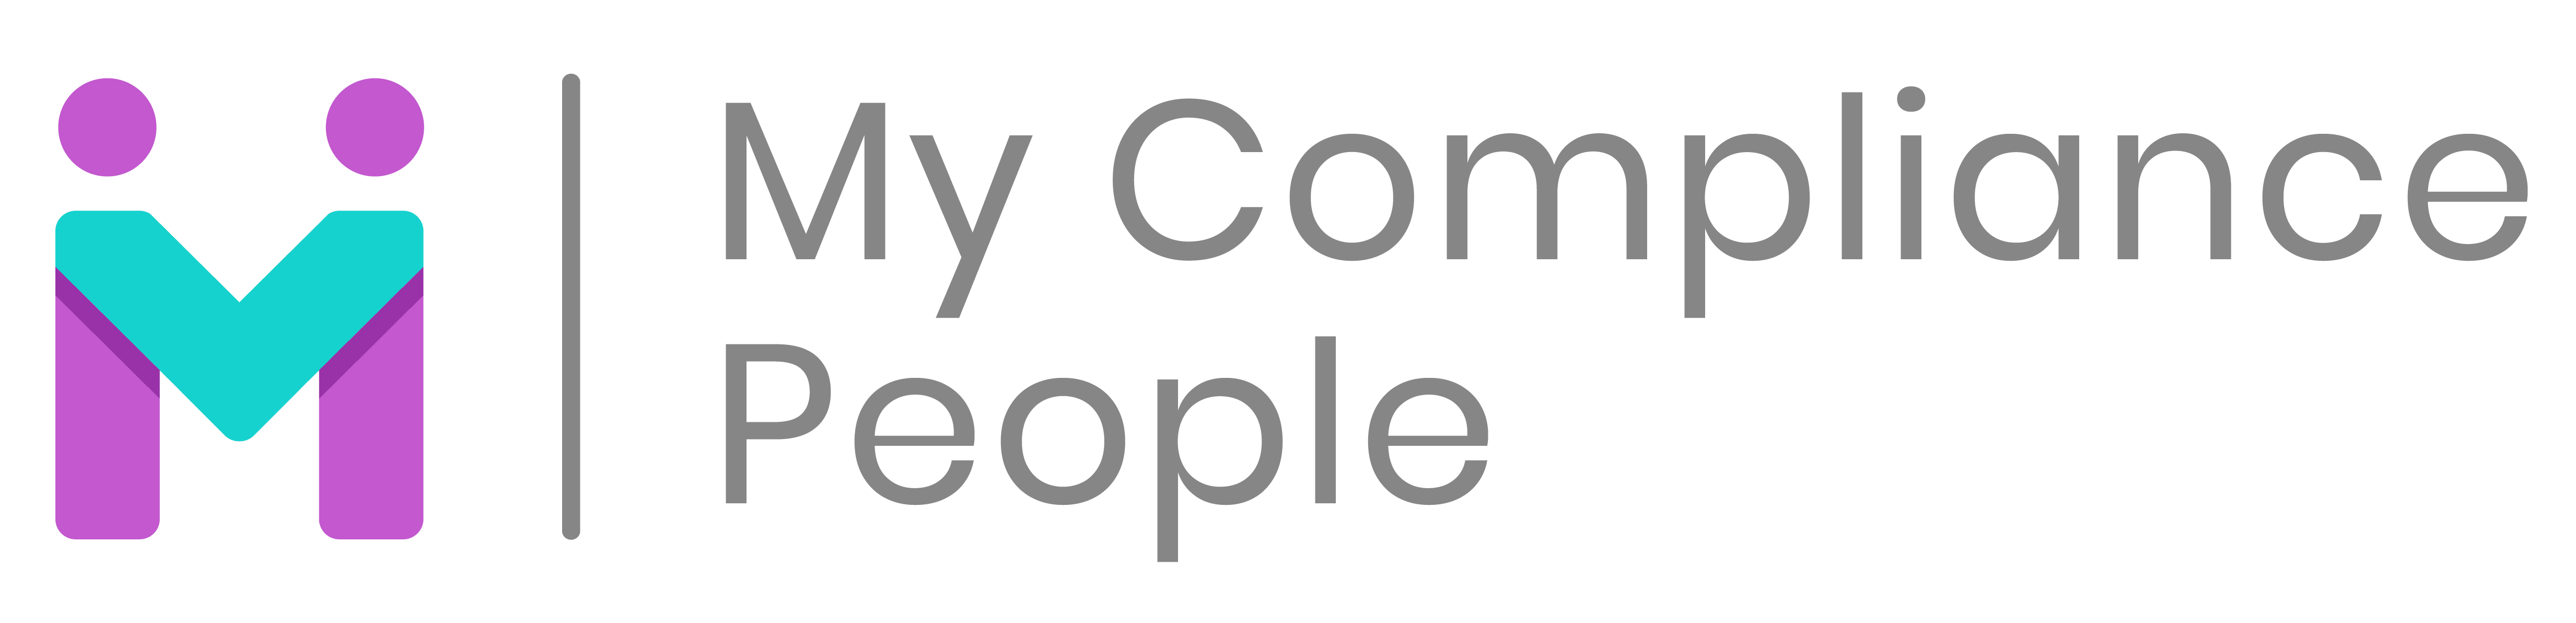 mycomplienpeople logo